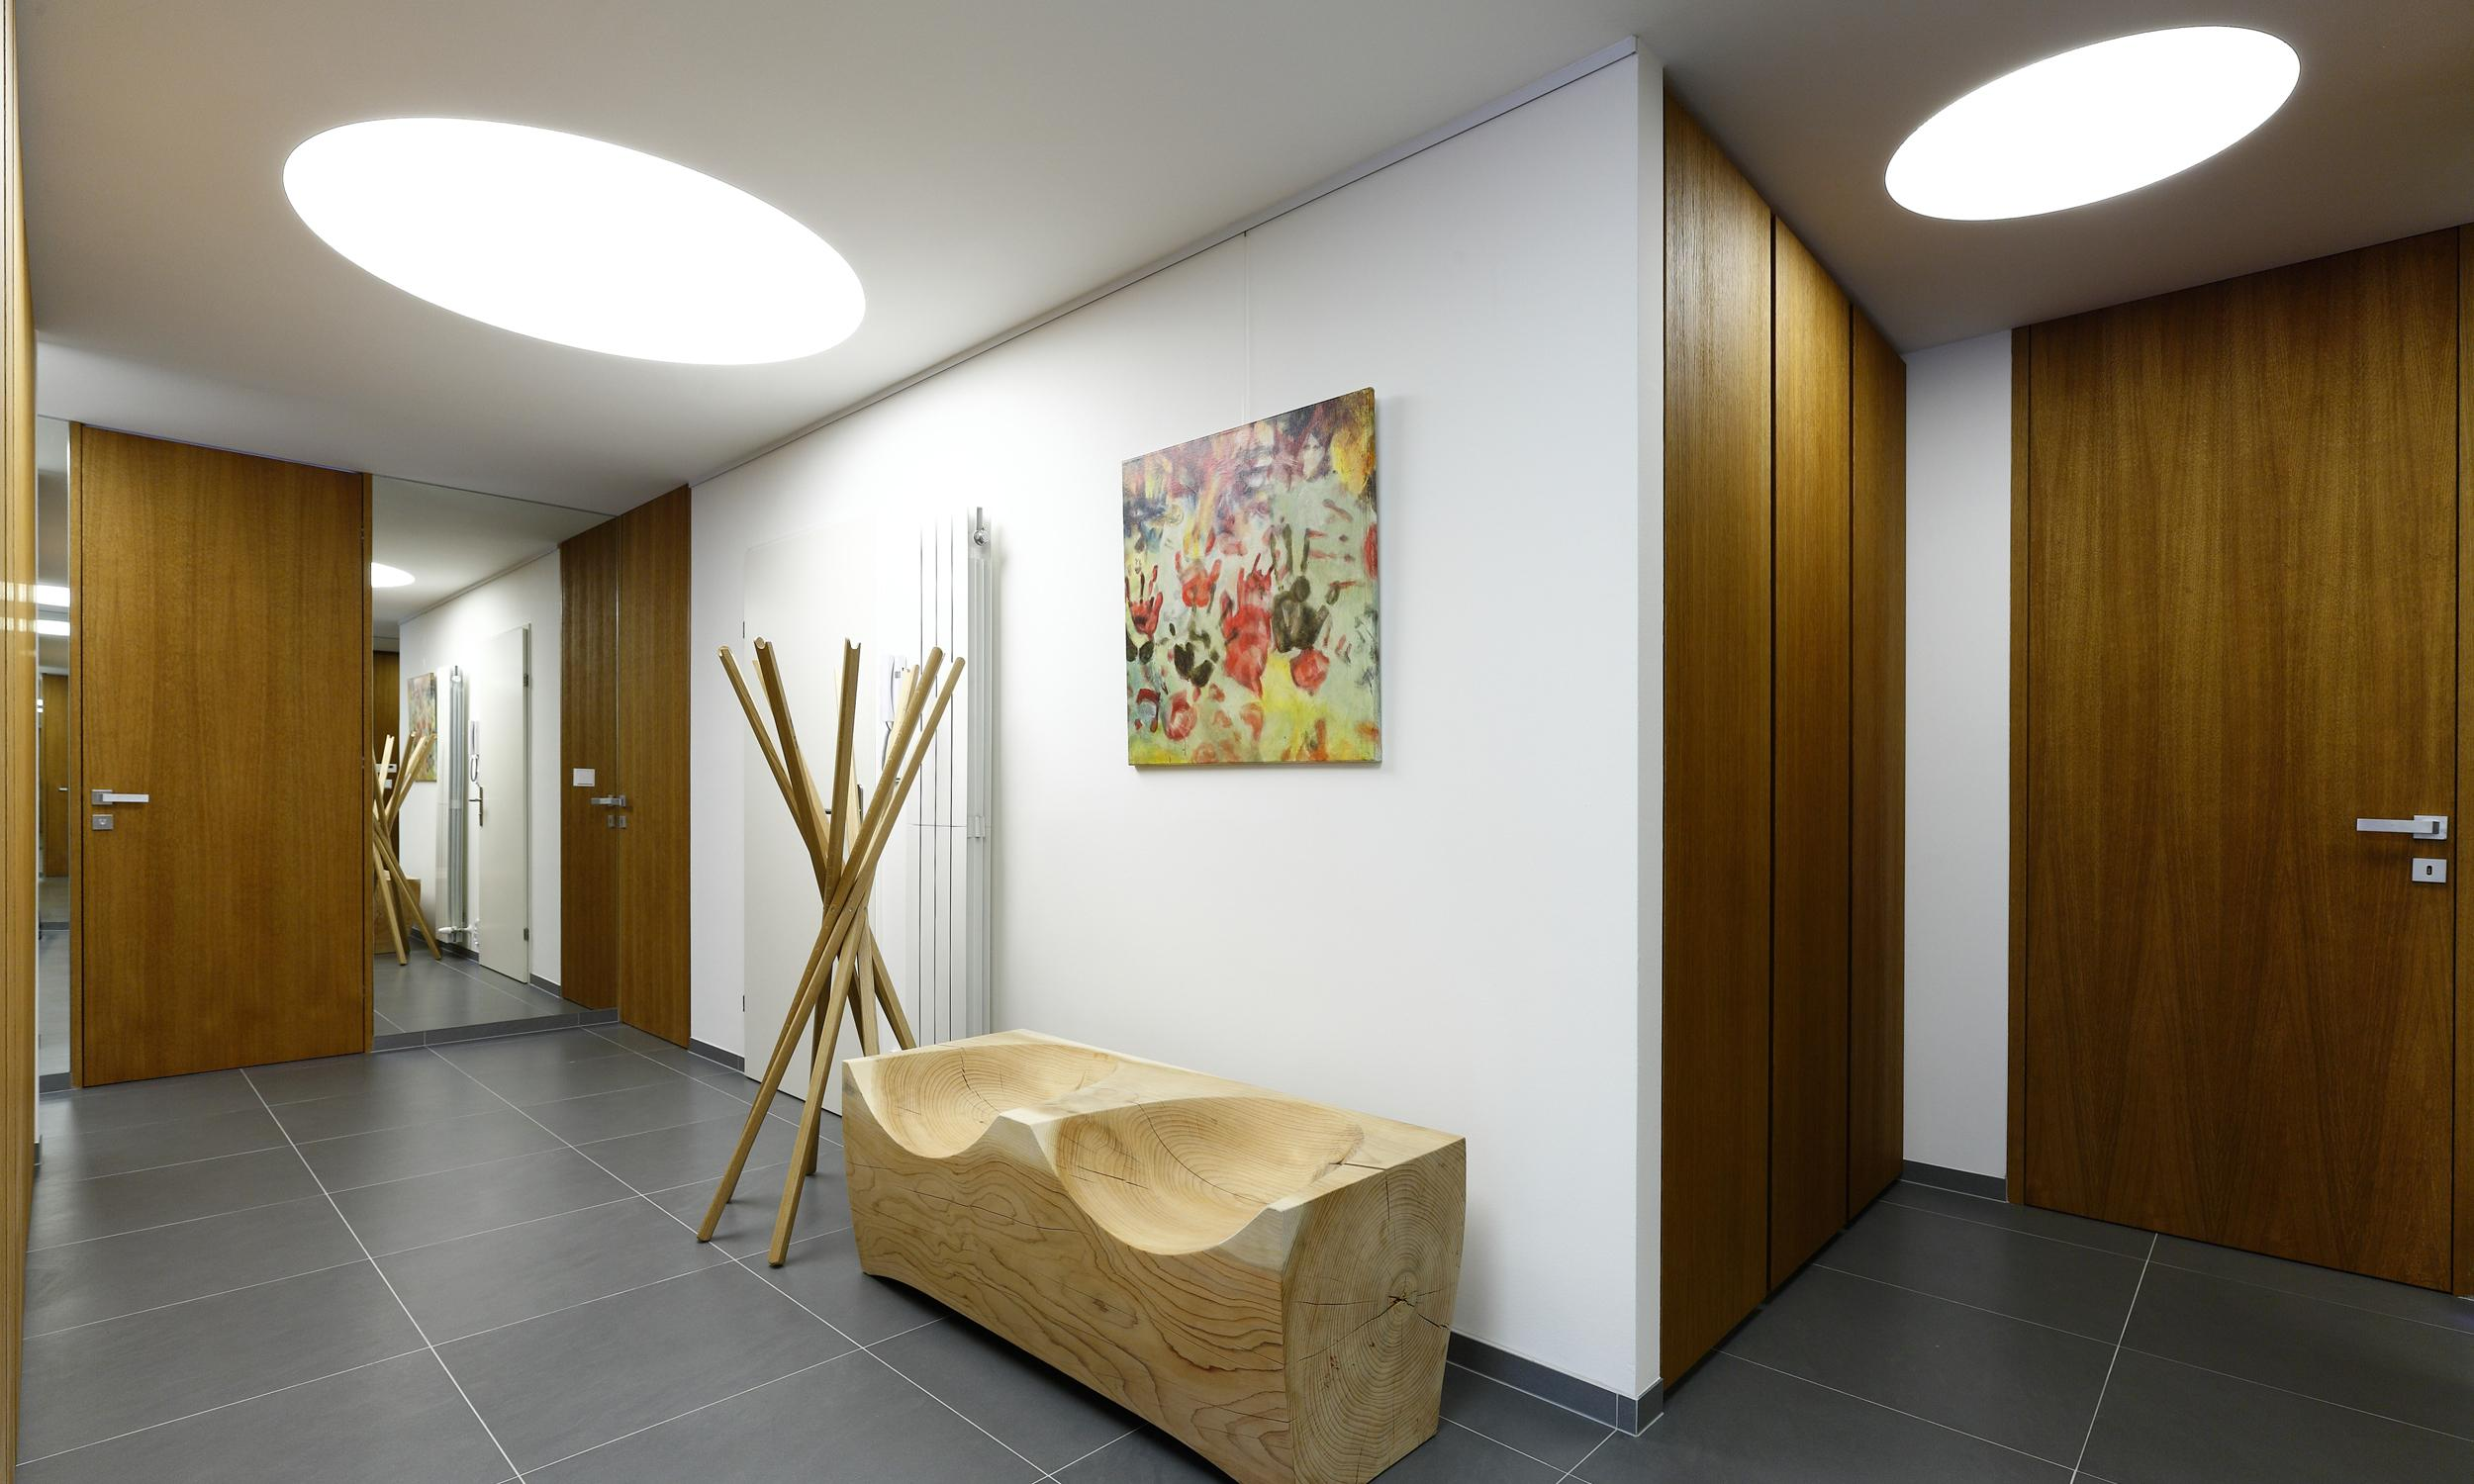 Foyer Apartments Clapham South : Vstupné haly rules architekti